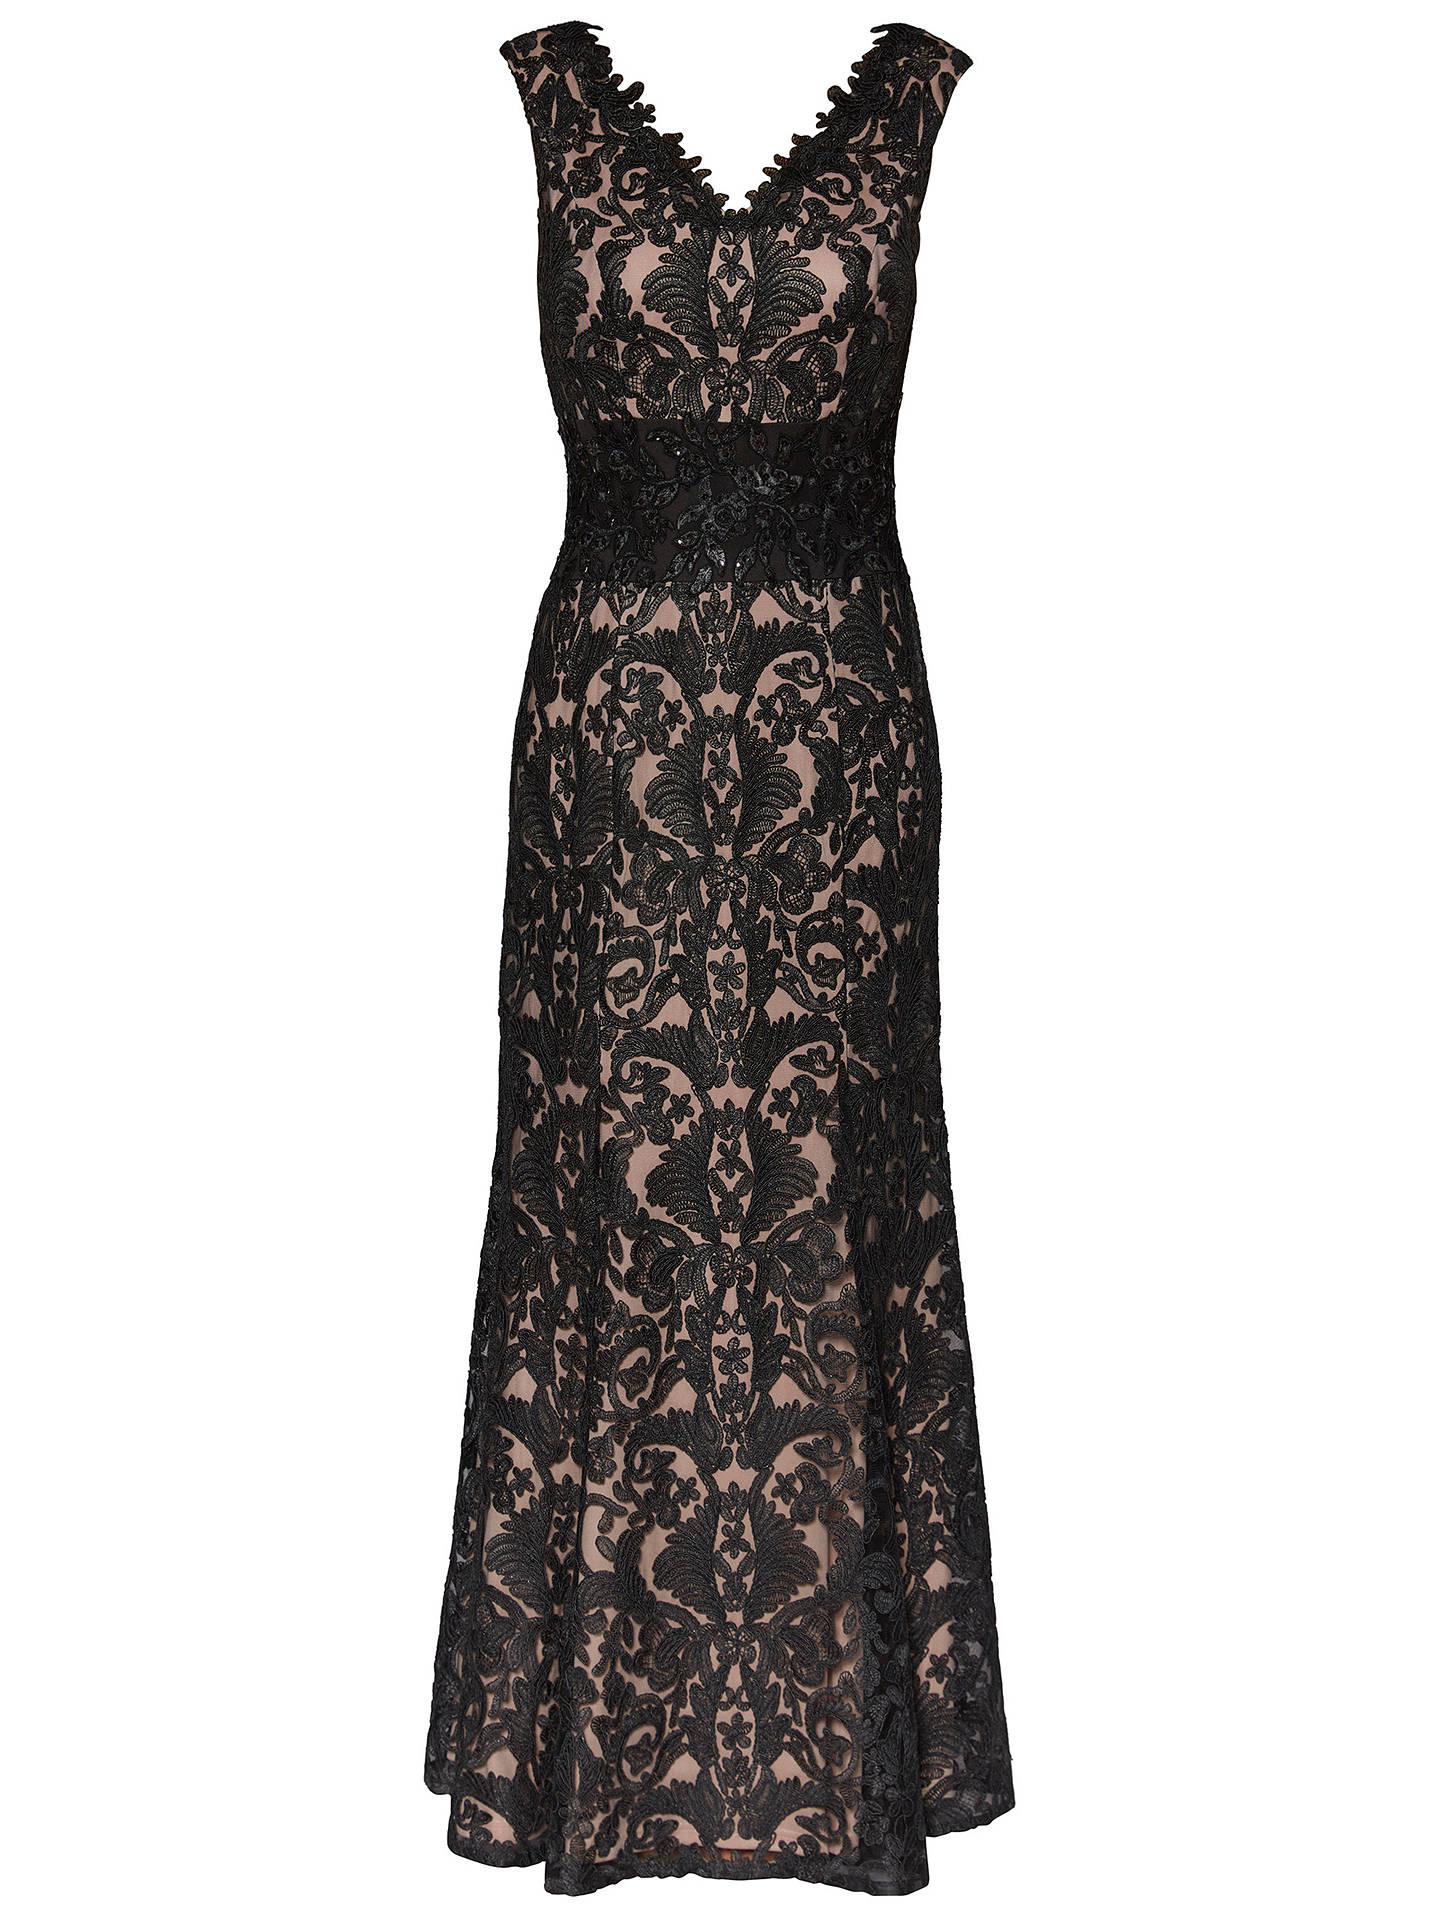 BuyGina Bacconi Imogen Embroidered Maxi Dress, Black, 8 Online at johnlewis.com